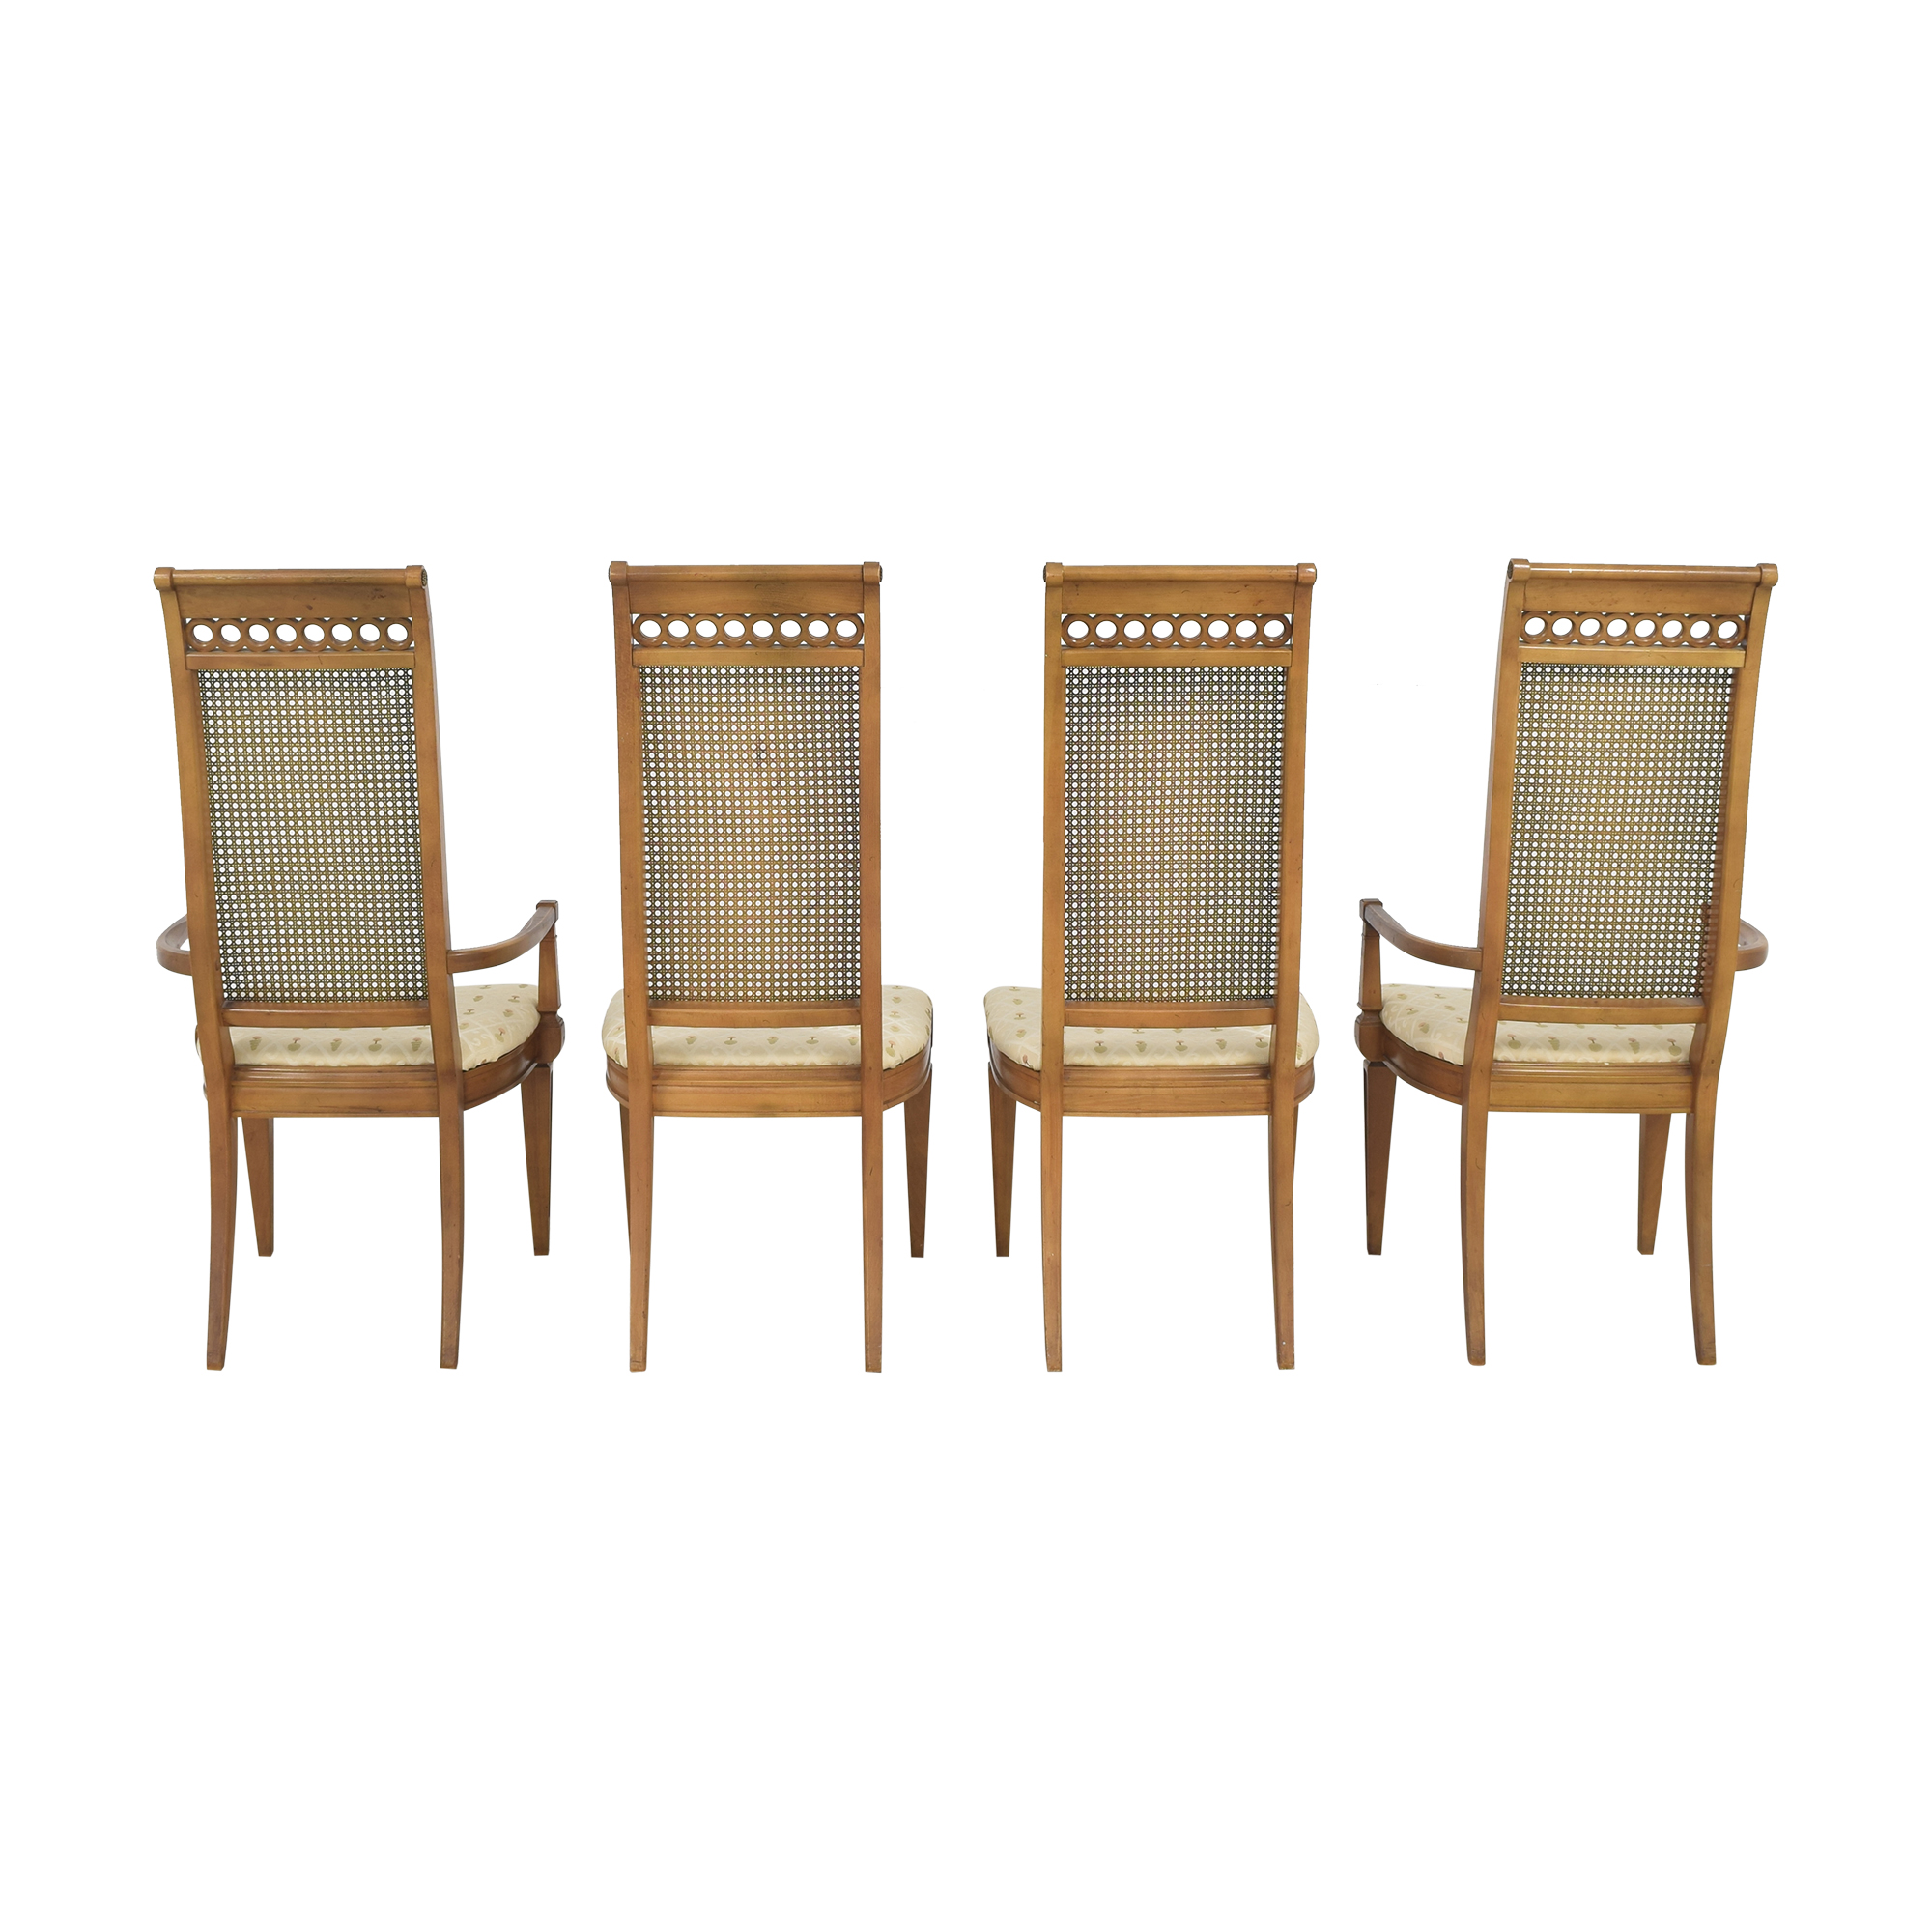 shop Thomasville Thomasville Bellini Collection Dining Chairs online